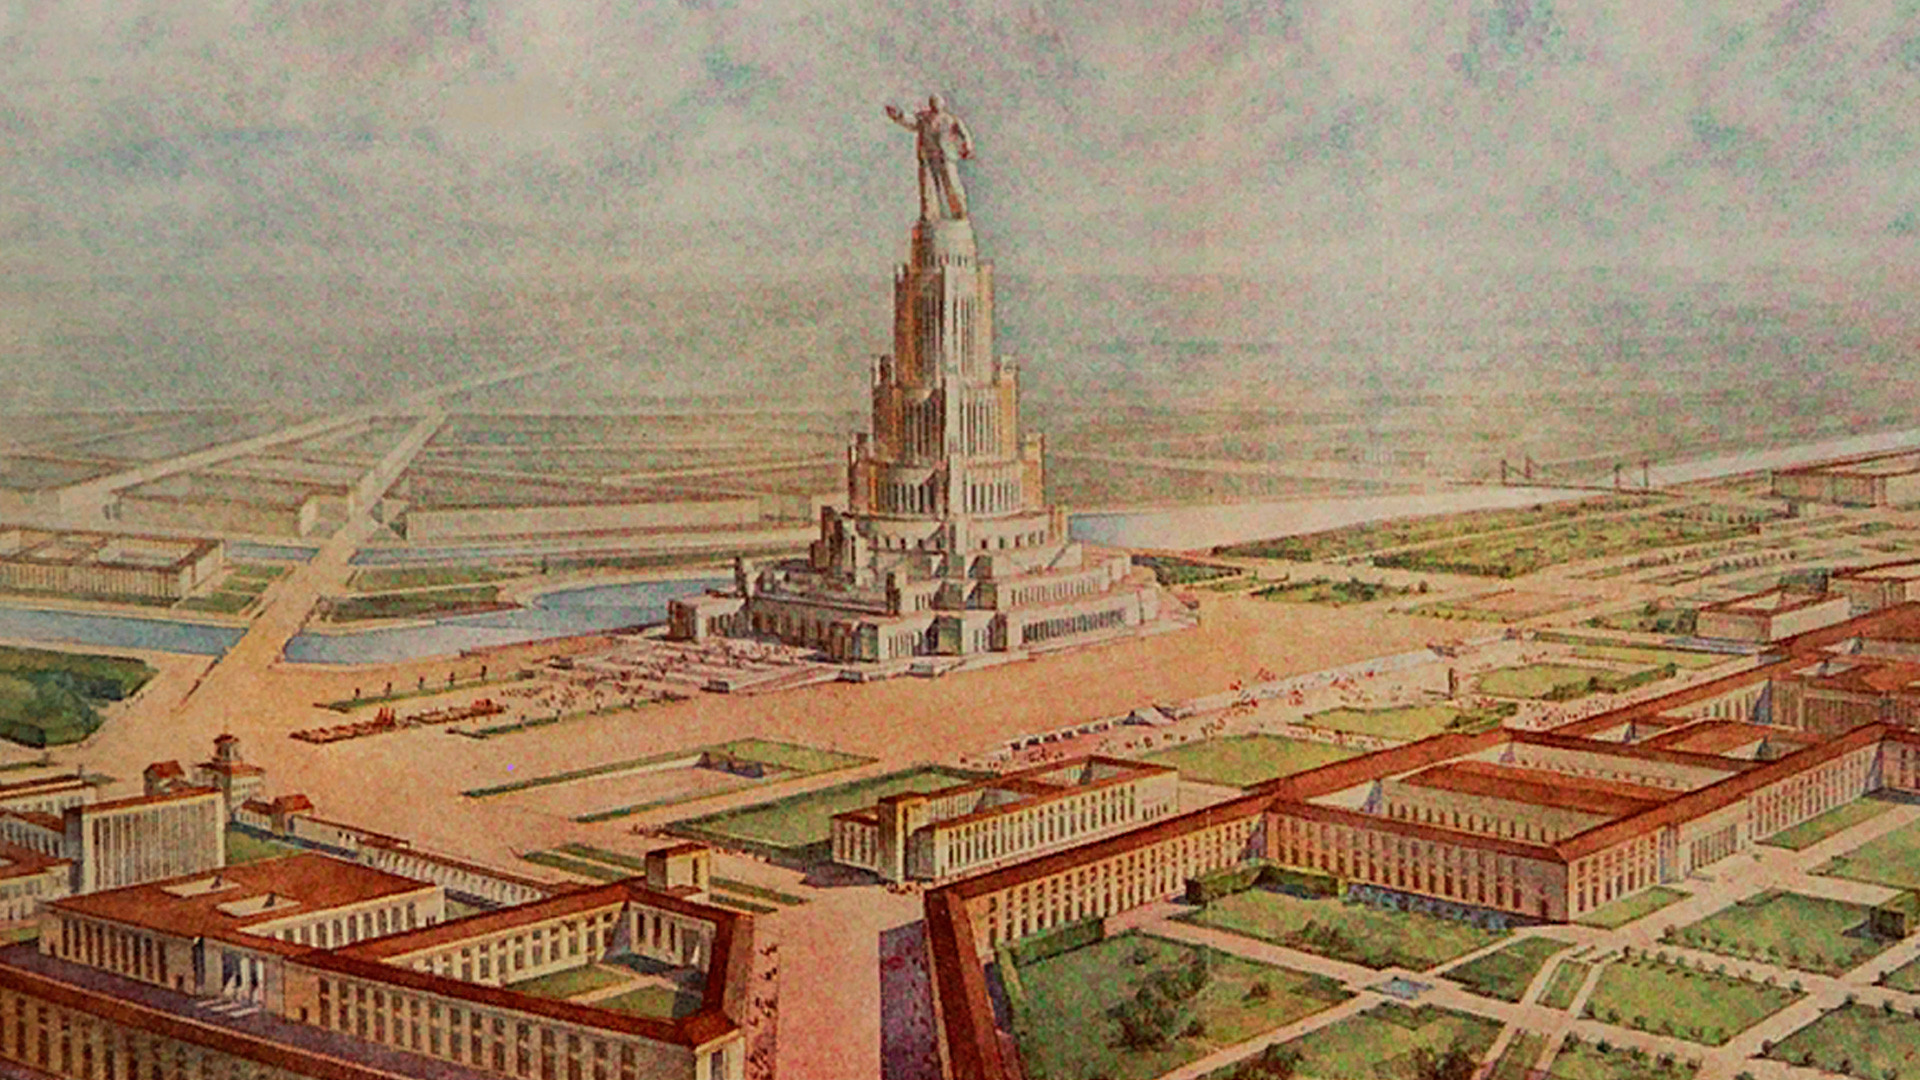 Illustration for the Palace of the Soviets